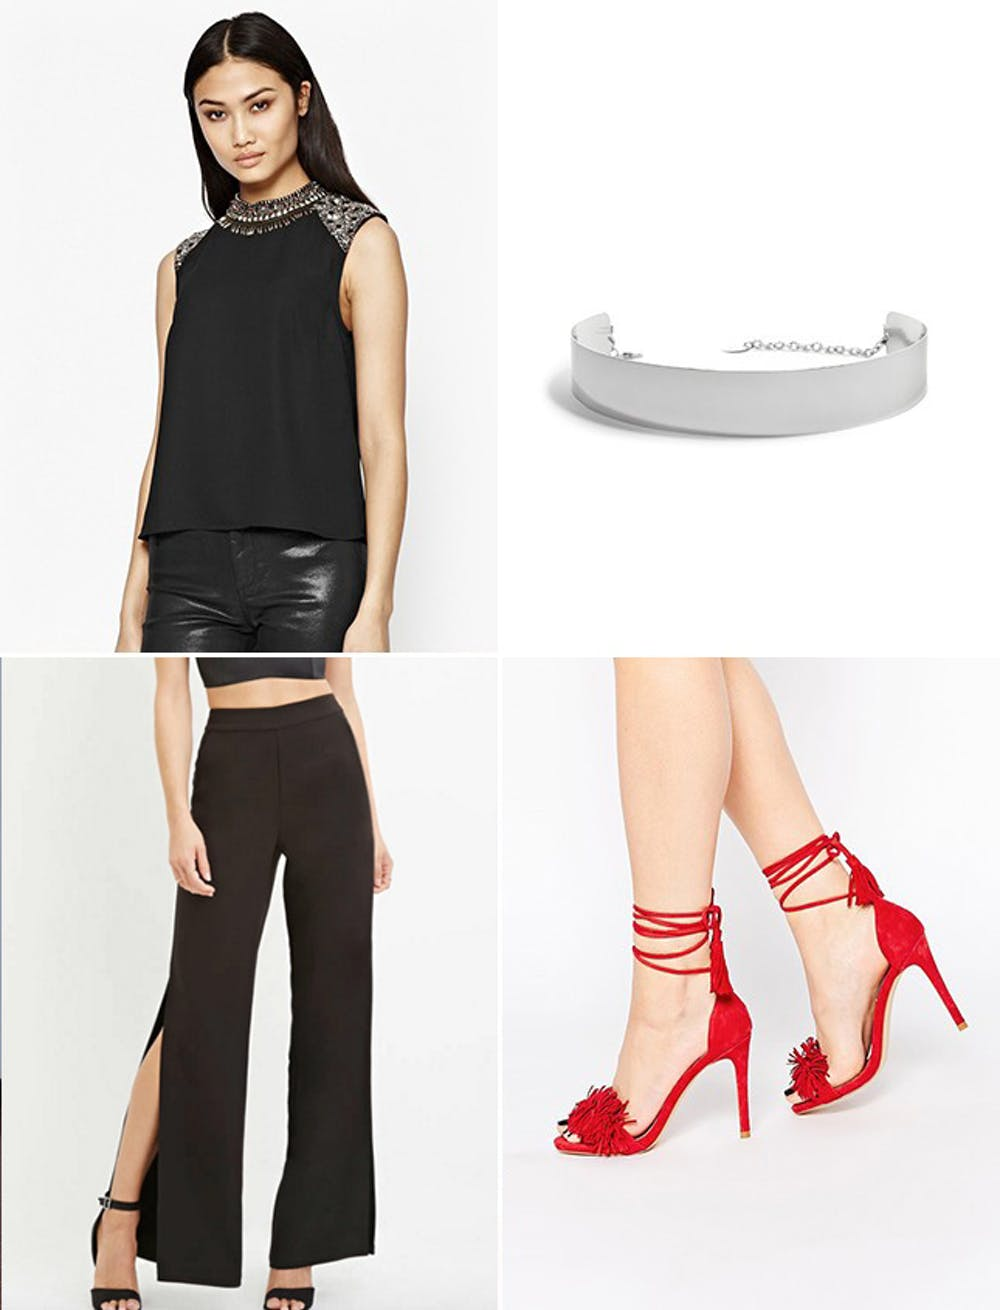 what-to-wear-for-a-spring-wedding-guest-outfit-black-wideleg-pants-red-shoe-sandalh-black-top-dinner.jpg